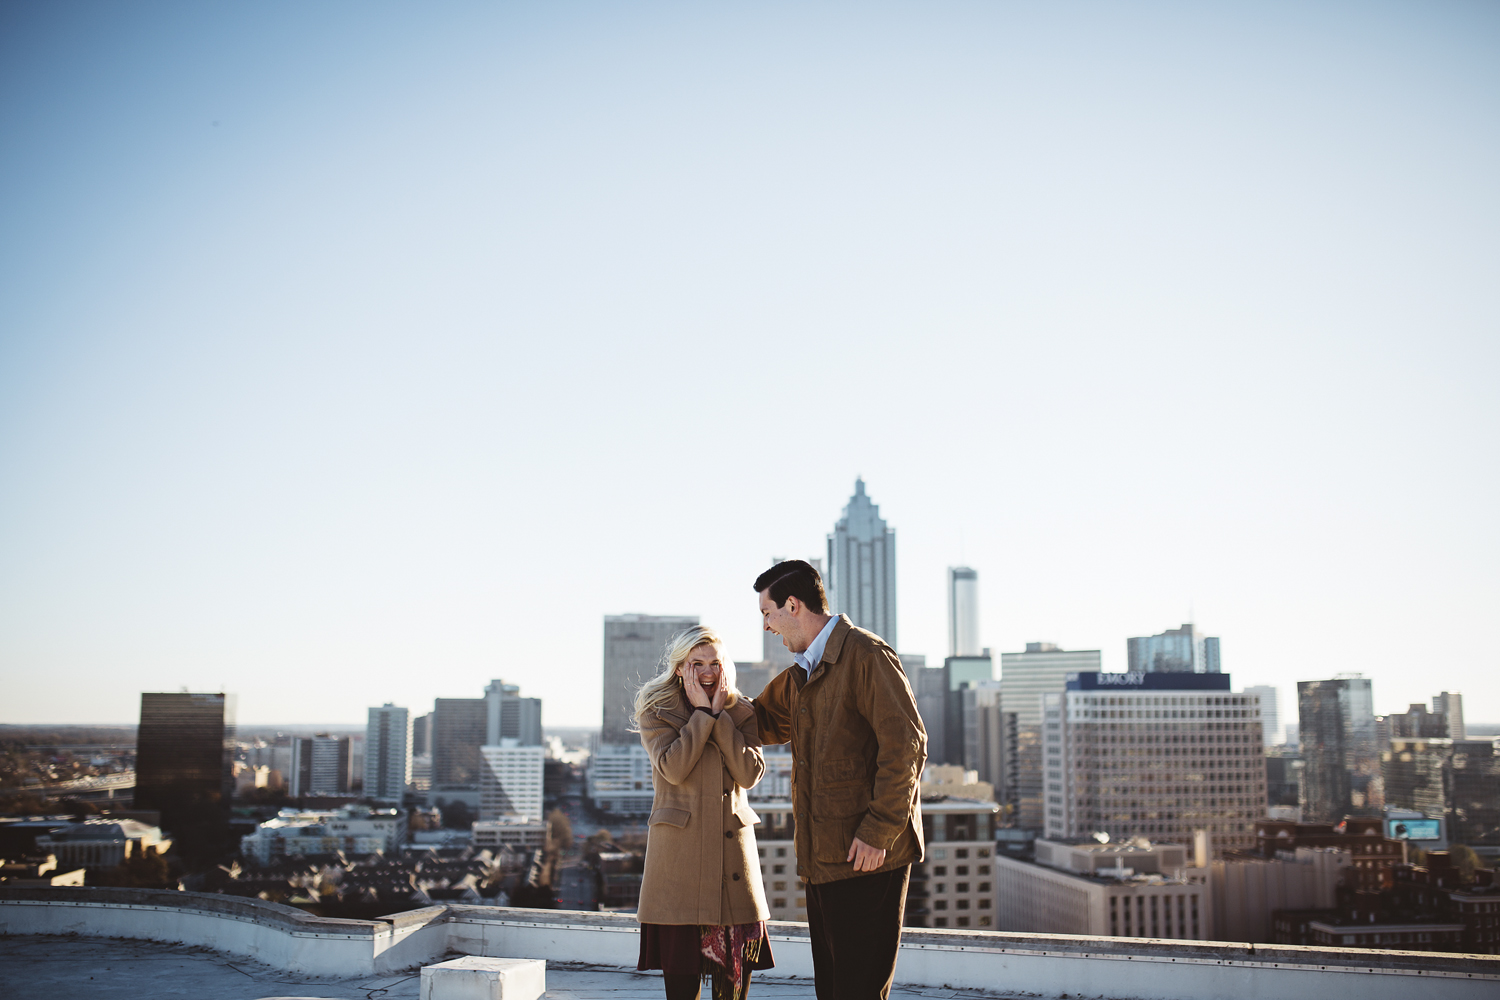 KDP_claire&drew - the proposal-187.jpg